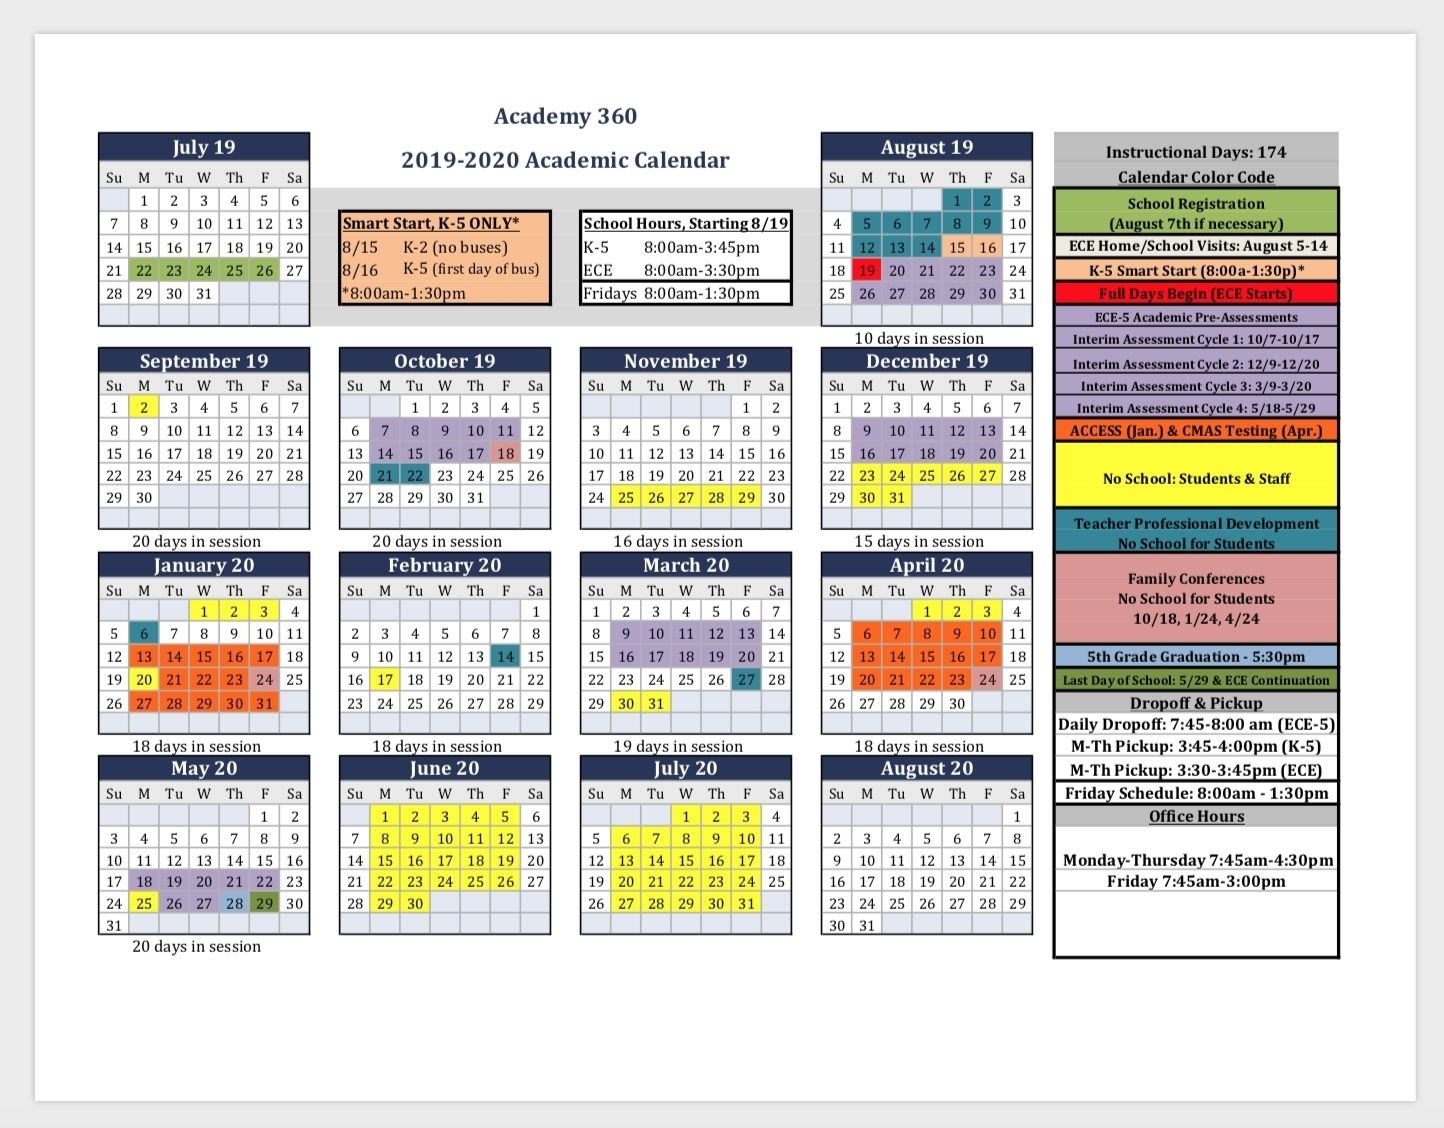 2020 Calendar With Special Days In 2020 | Special Day intended for 2020 Calendar Of Special Days